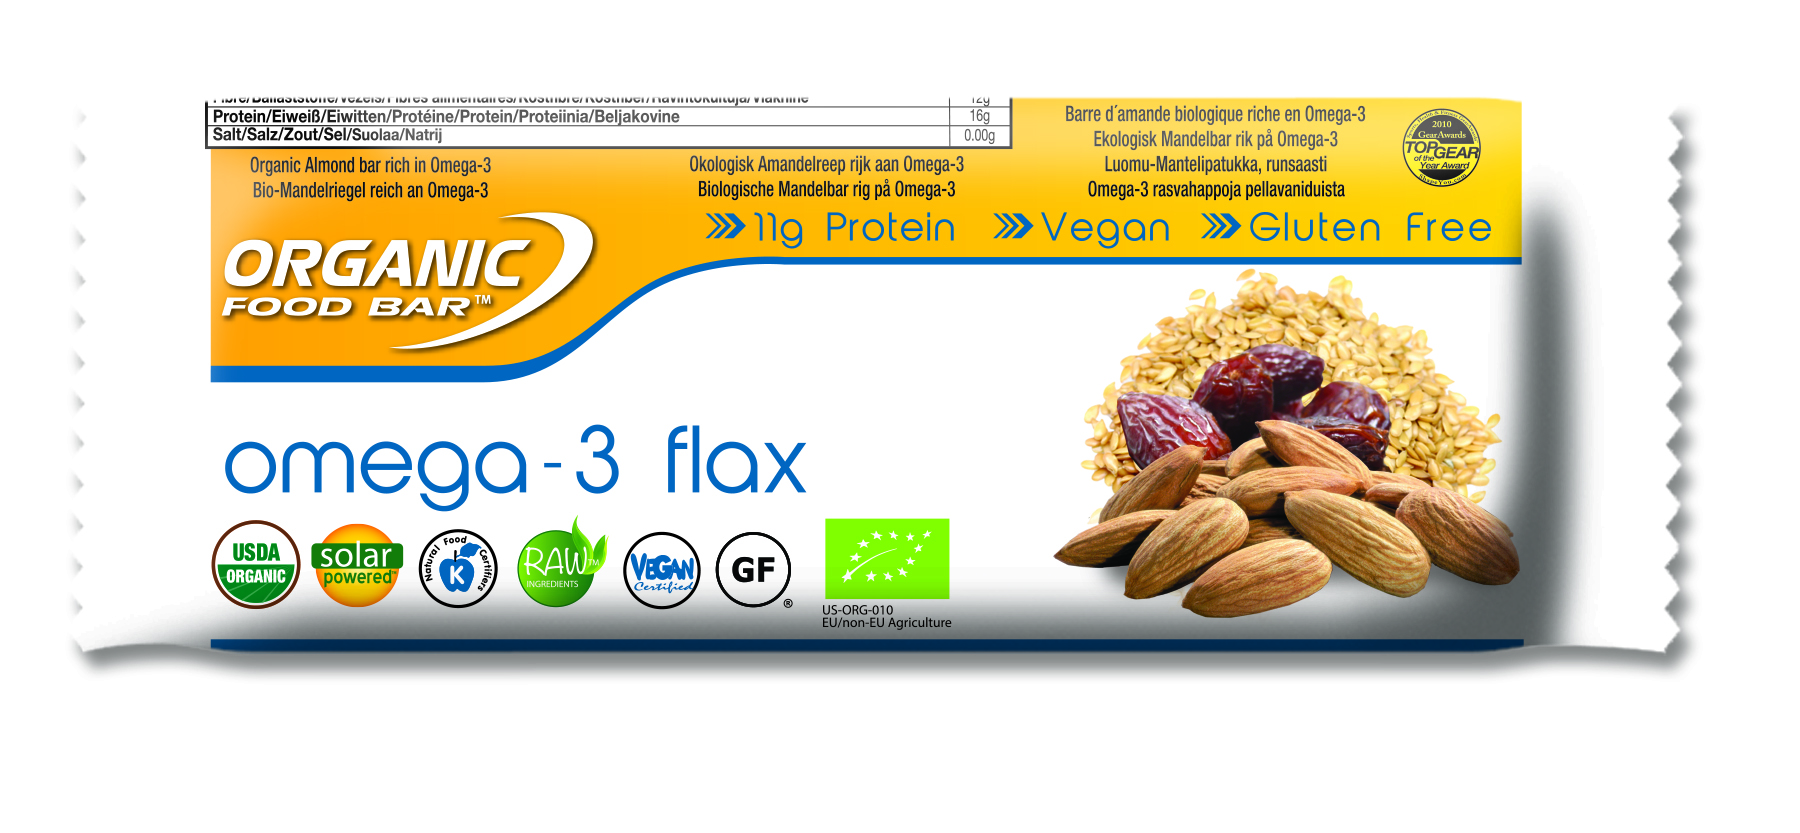 Organic Food Bar Omega-3 Flax